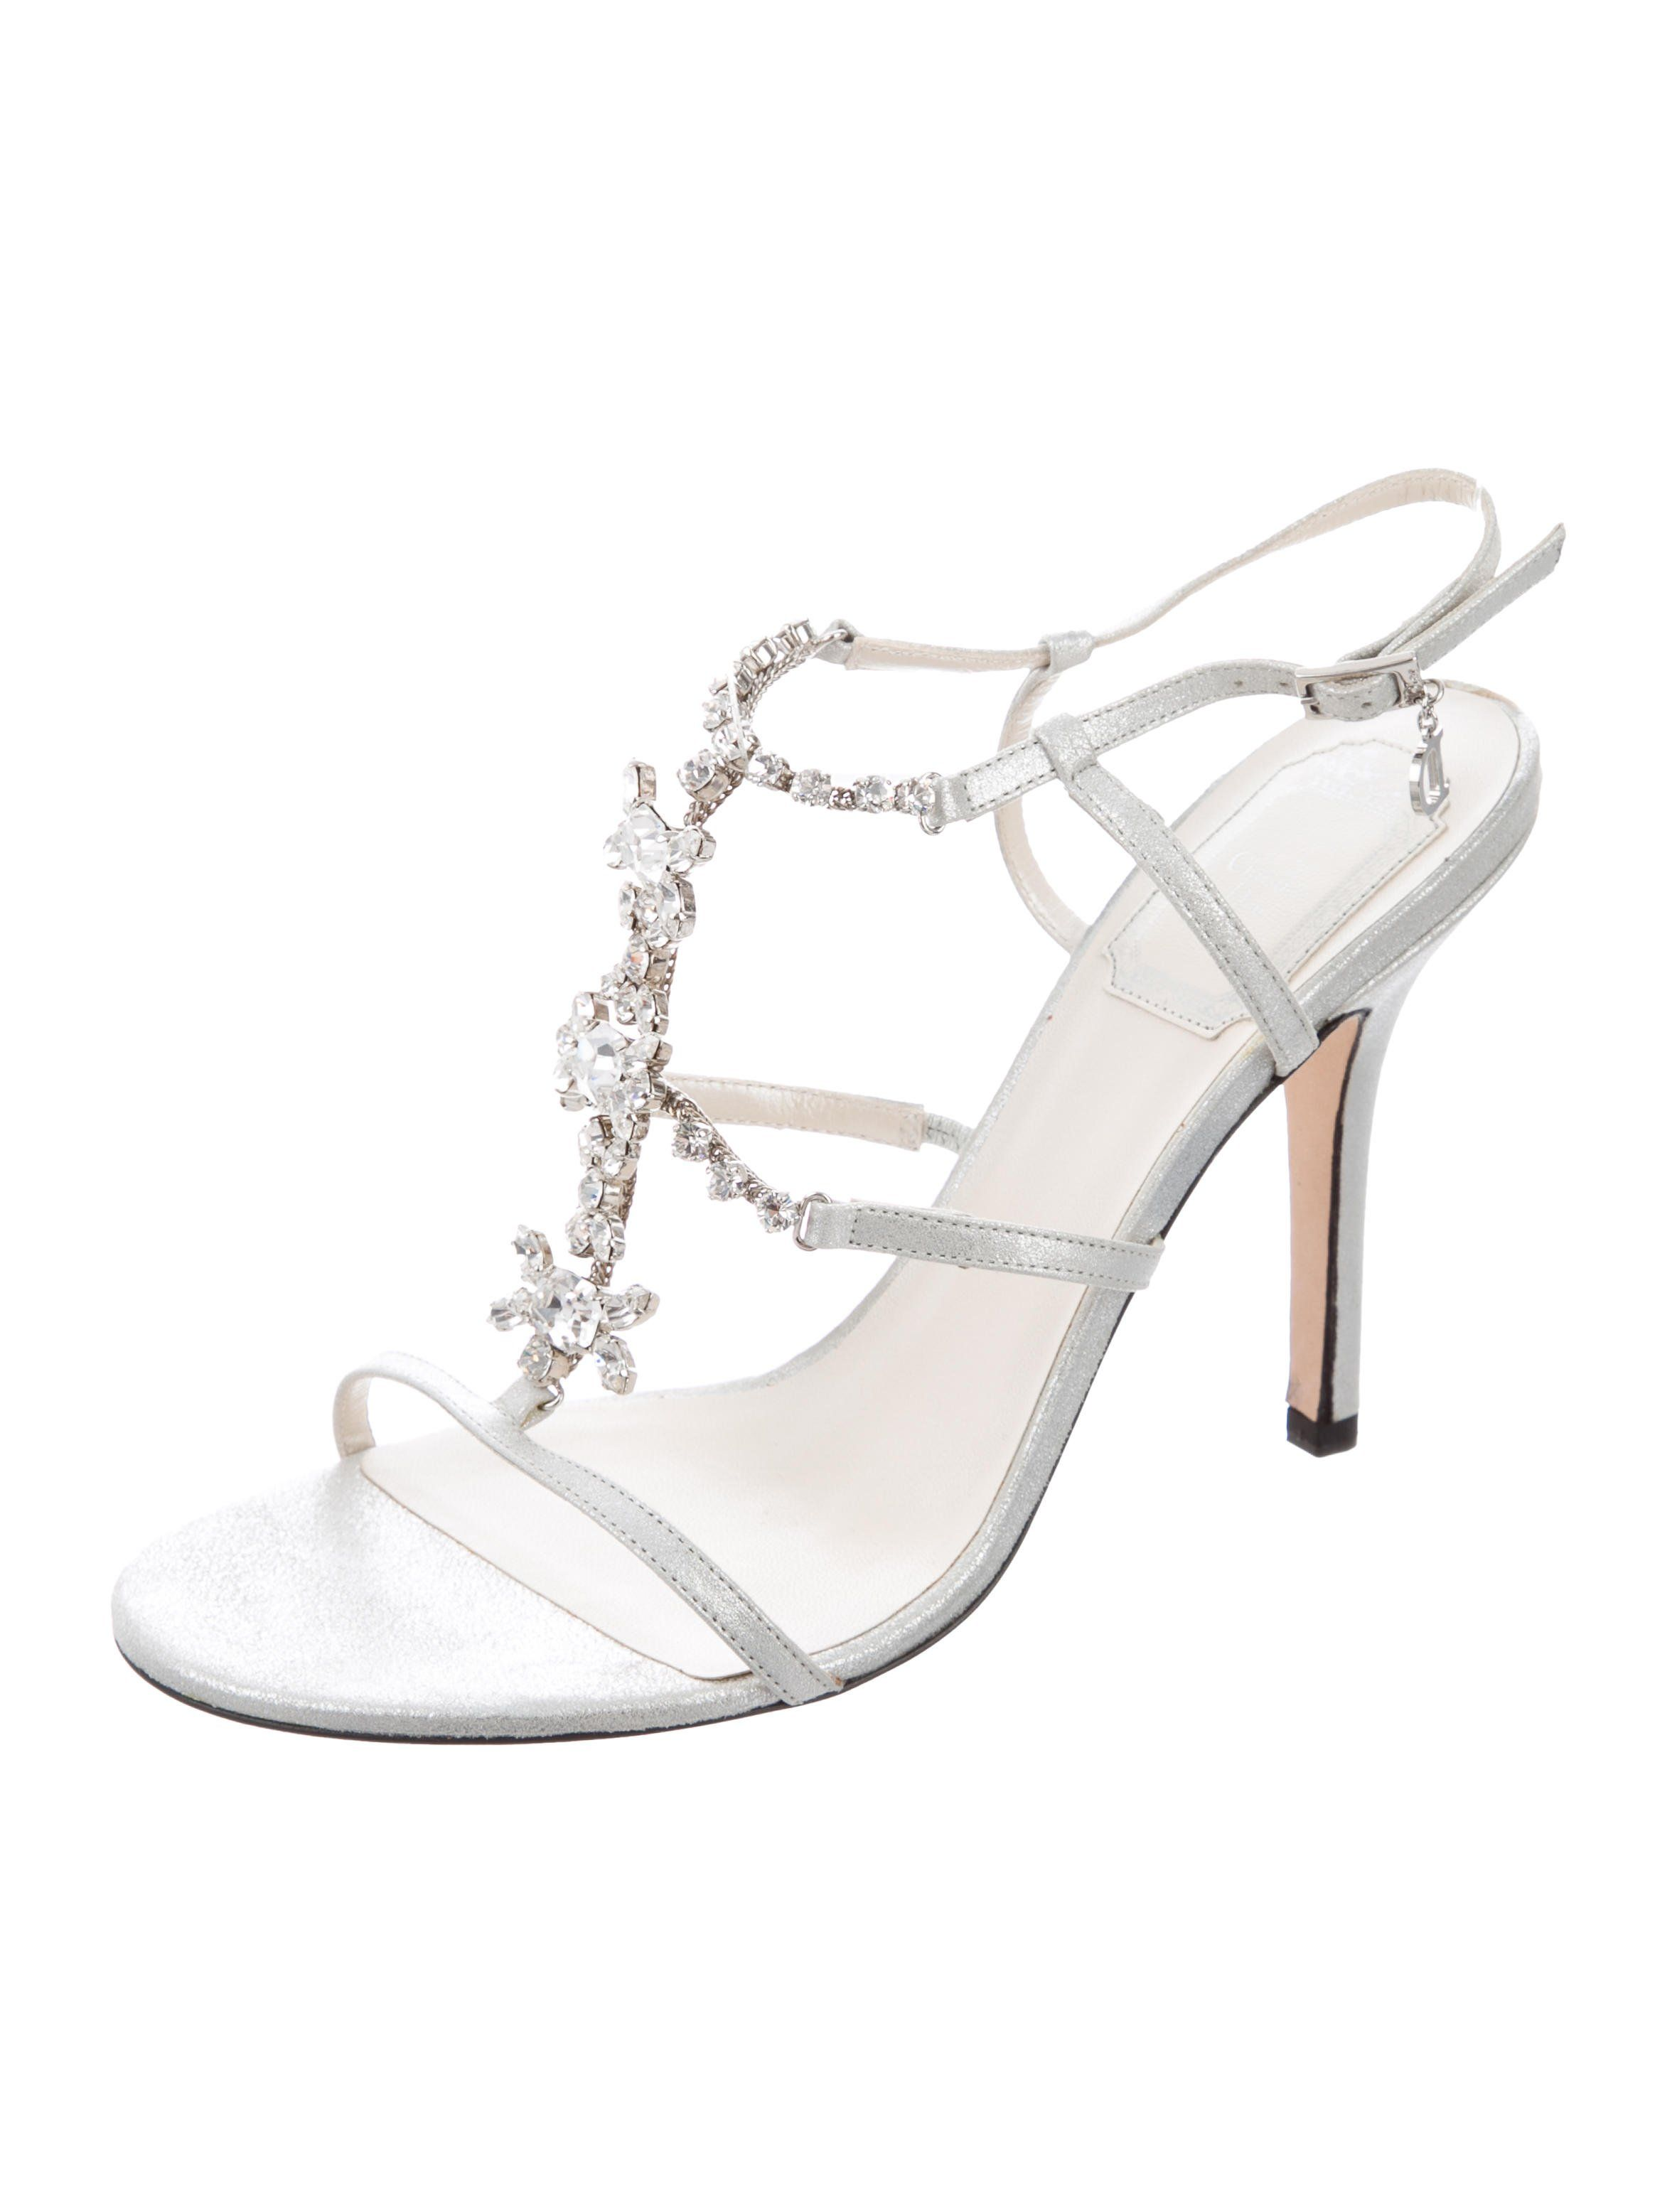 get to buy cheap online buy cheap 2015 Christian Dior Leather Jewel-Embellished Sandals cheap sale new cheap sale 2014 the cheapest oC2x6qsmjP